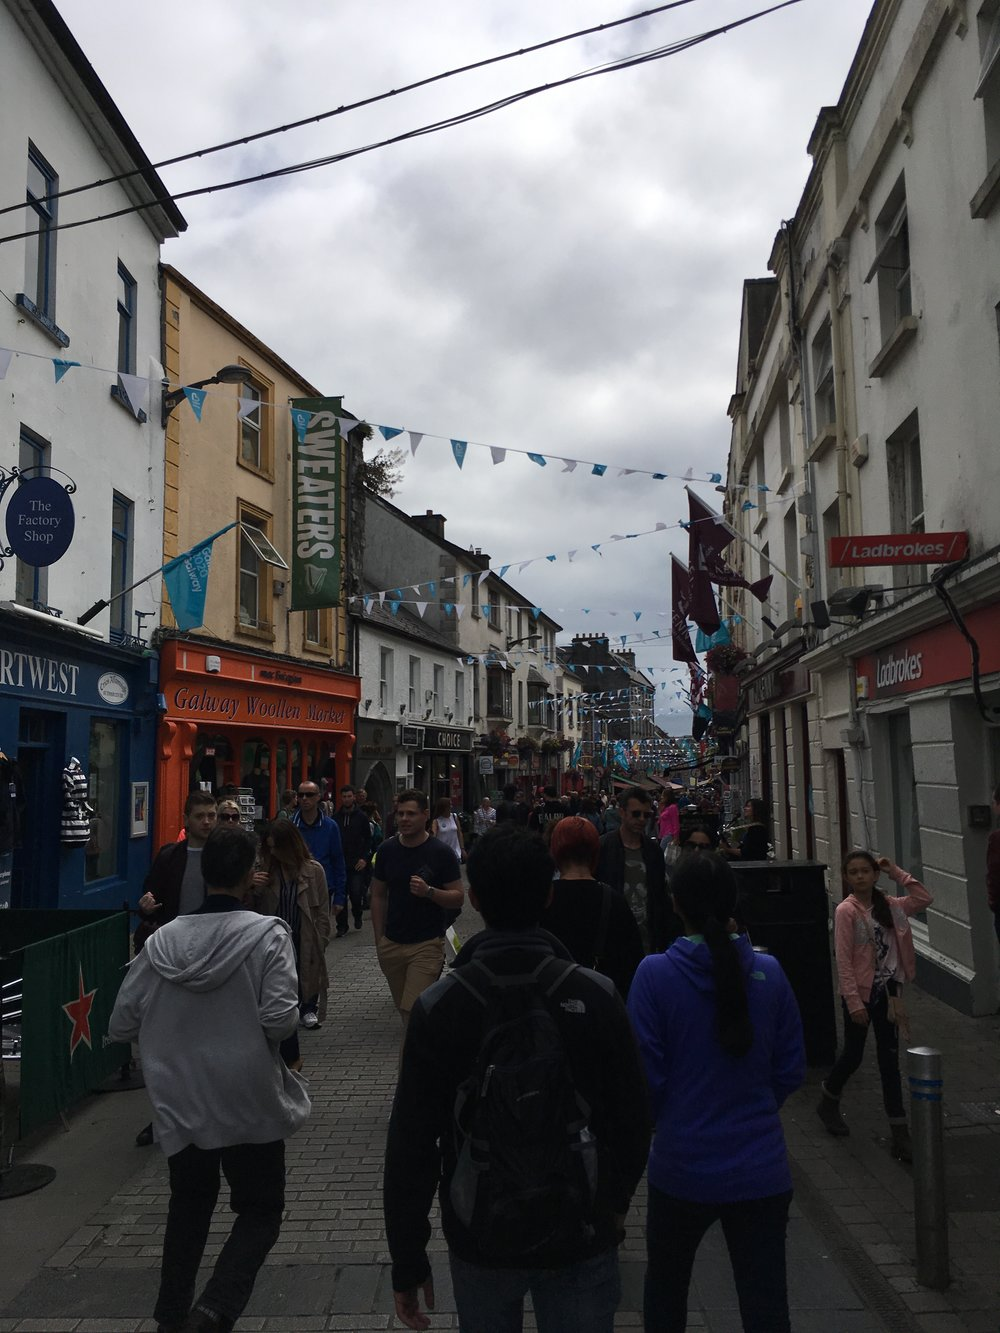 Galway afternoon